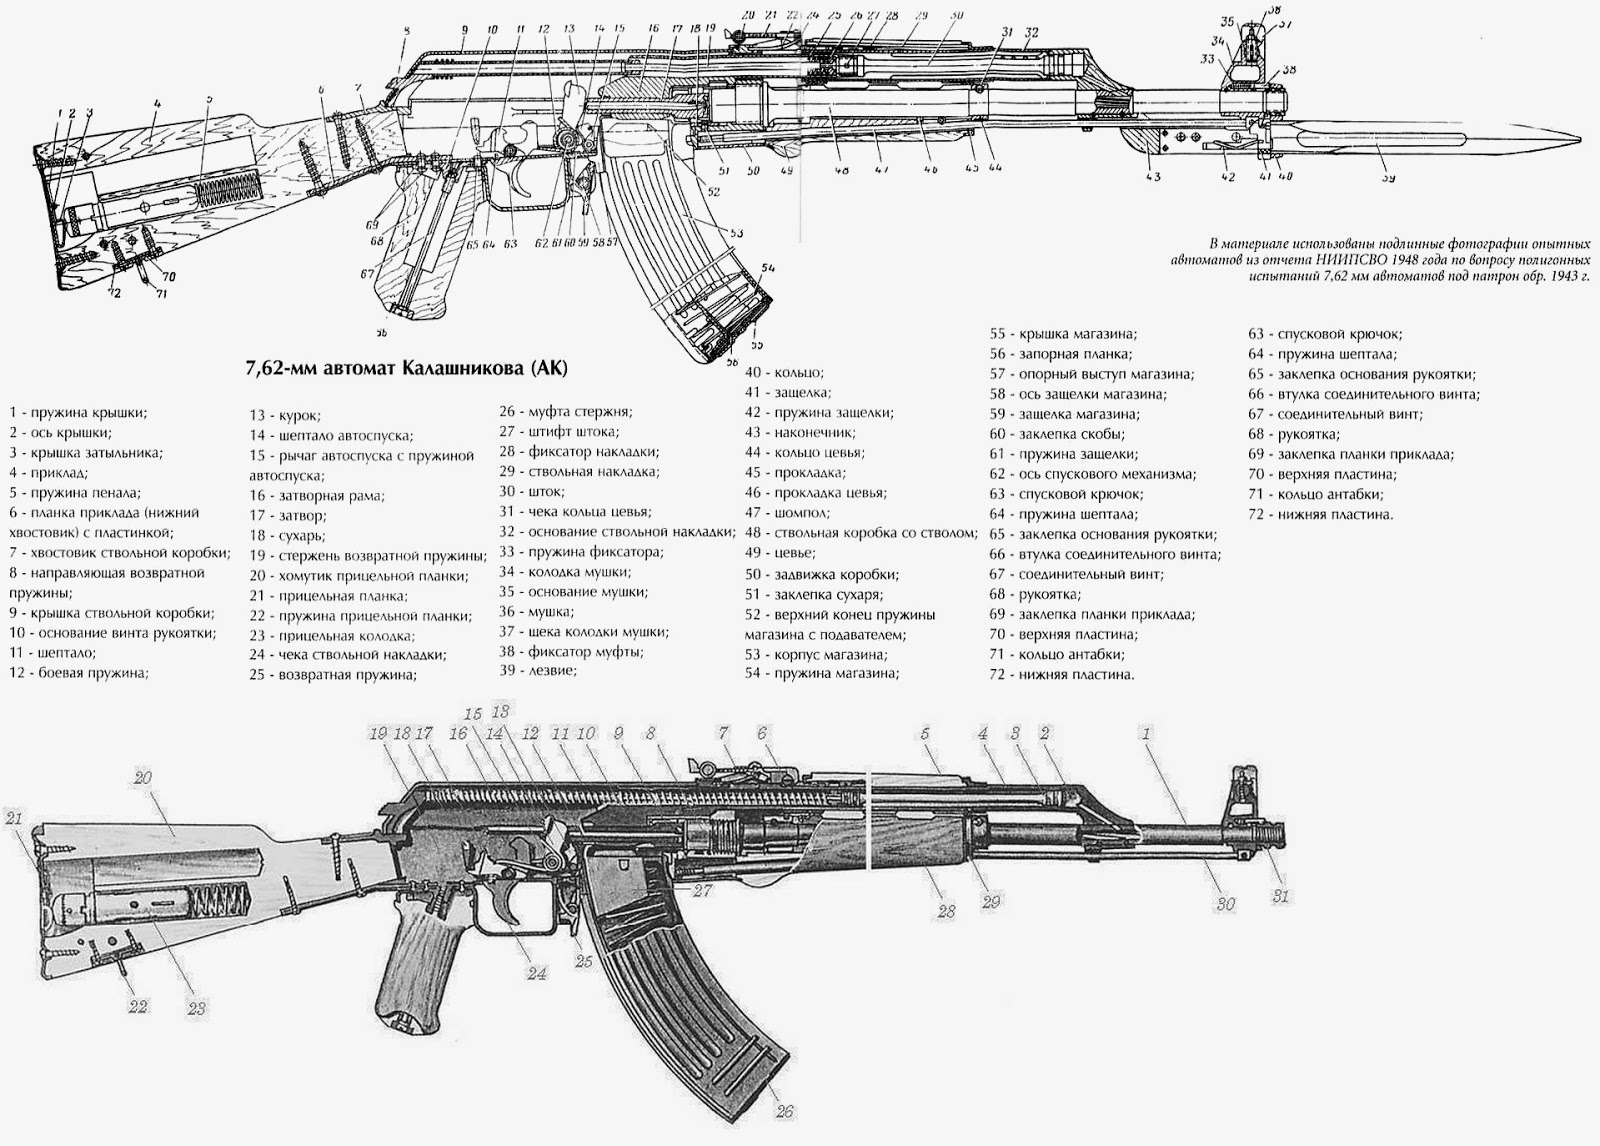 ak 74 exploded diagram